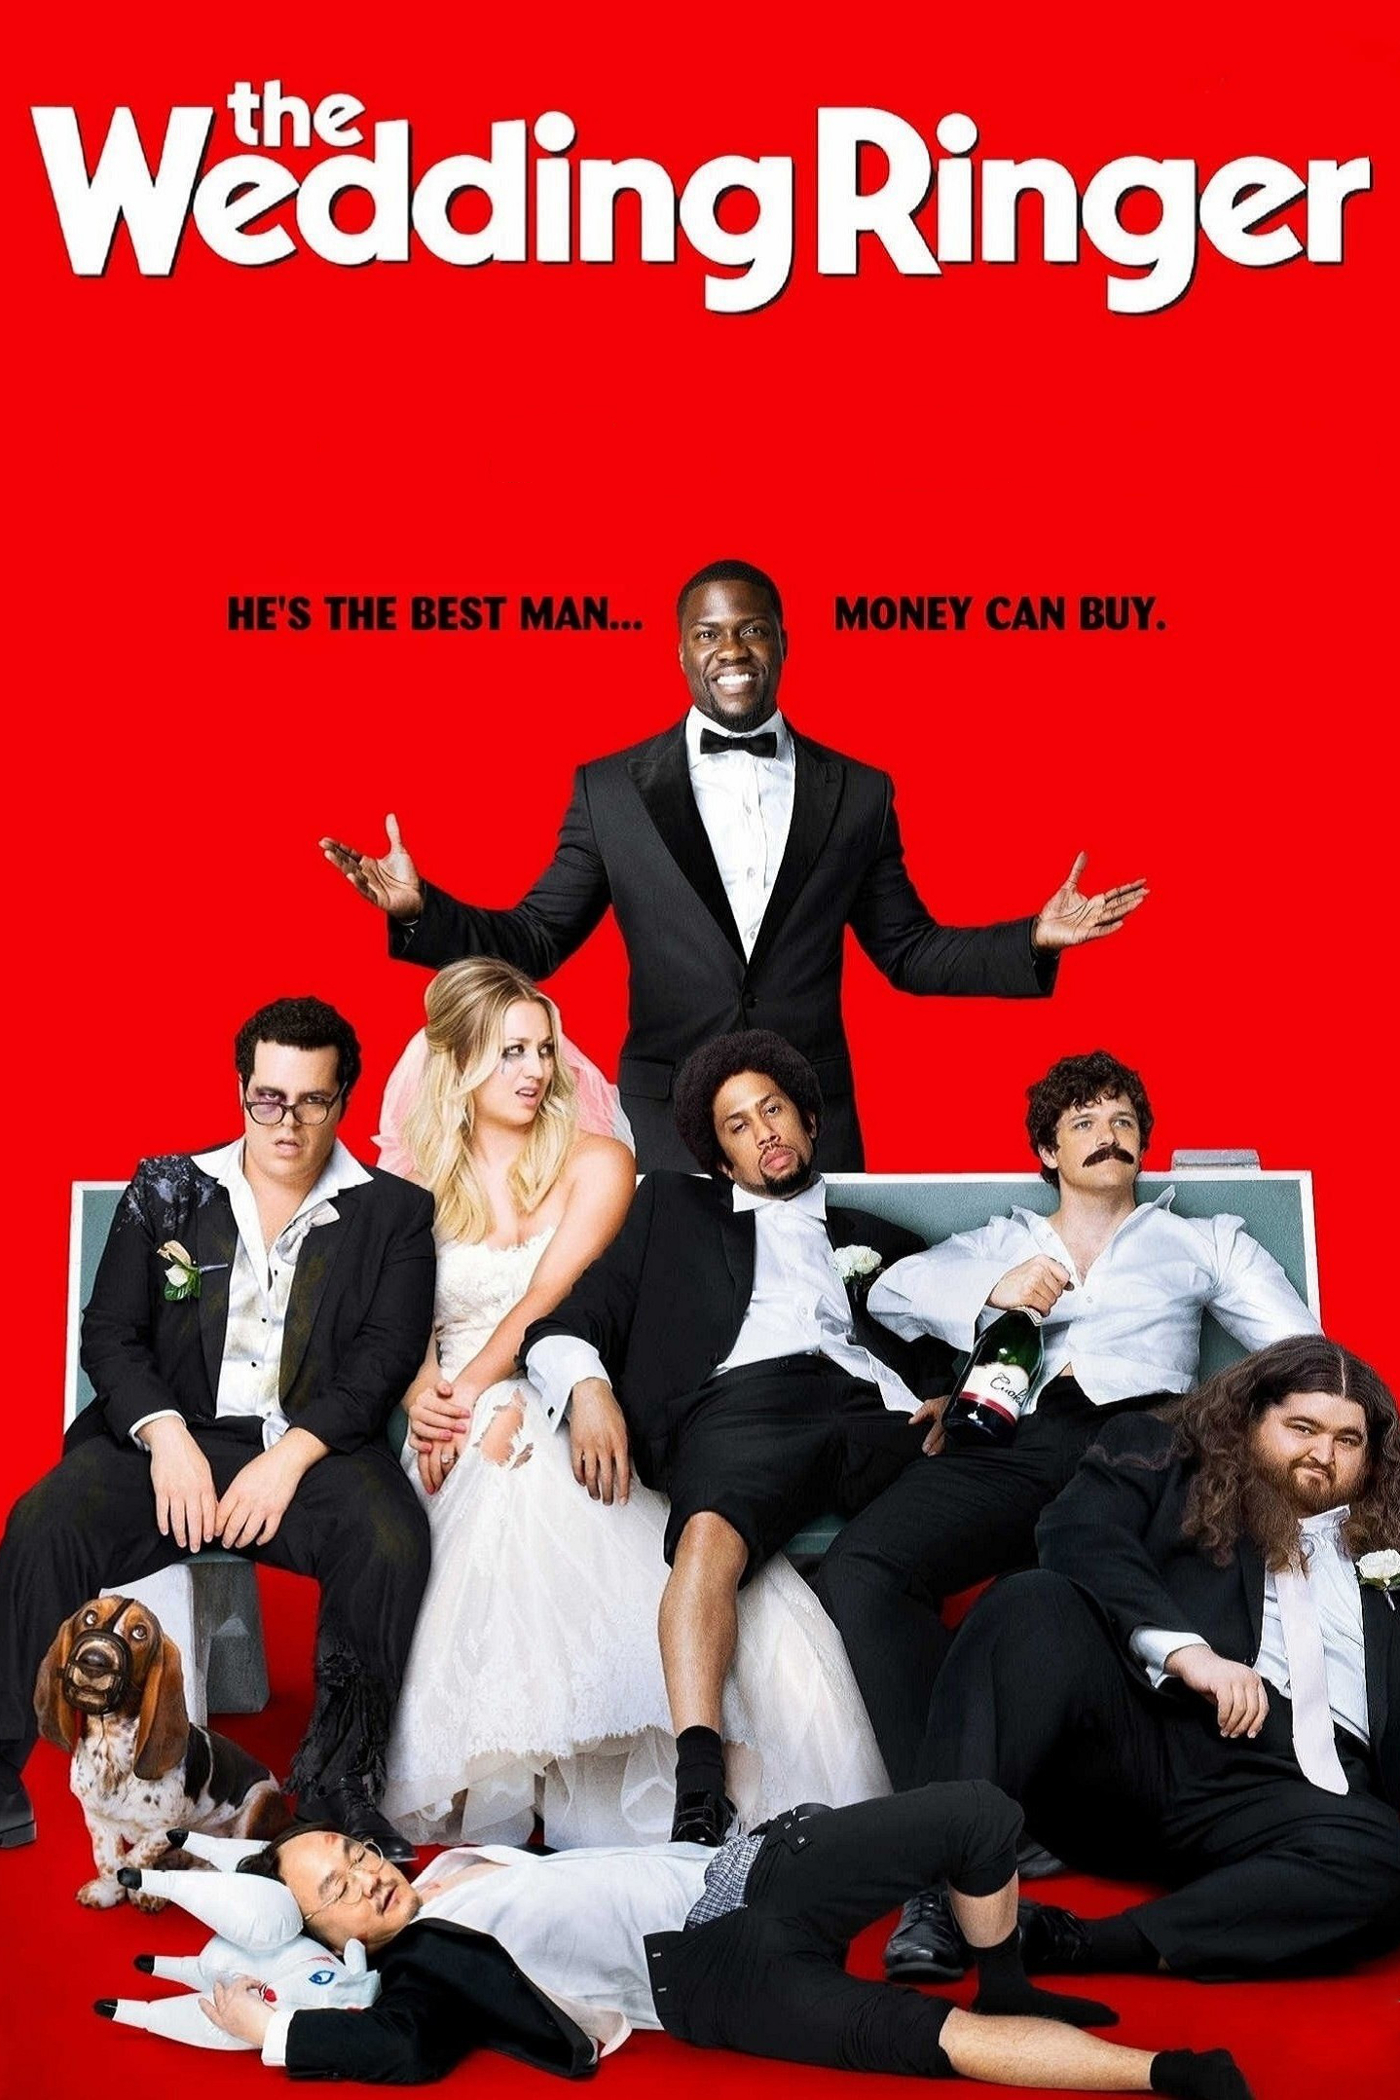 the wedding ringer (2015) | log's line